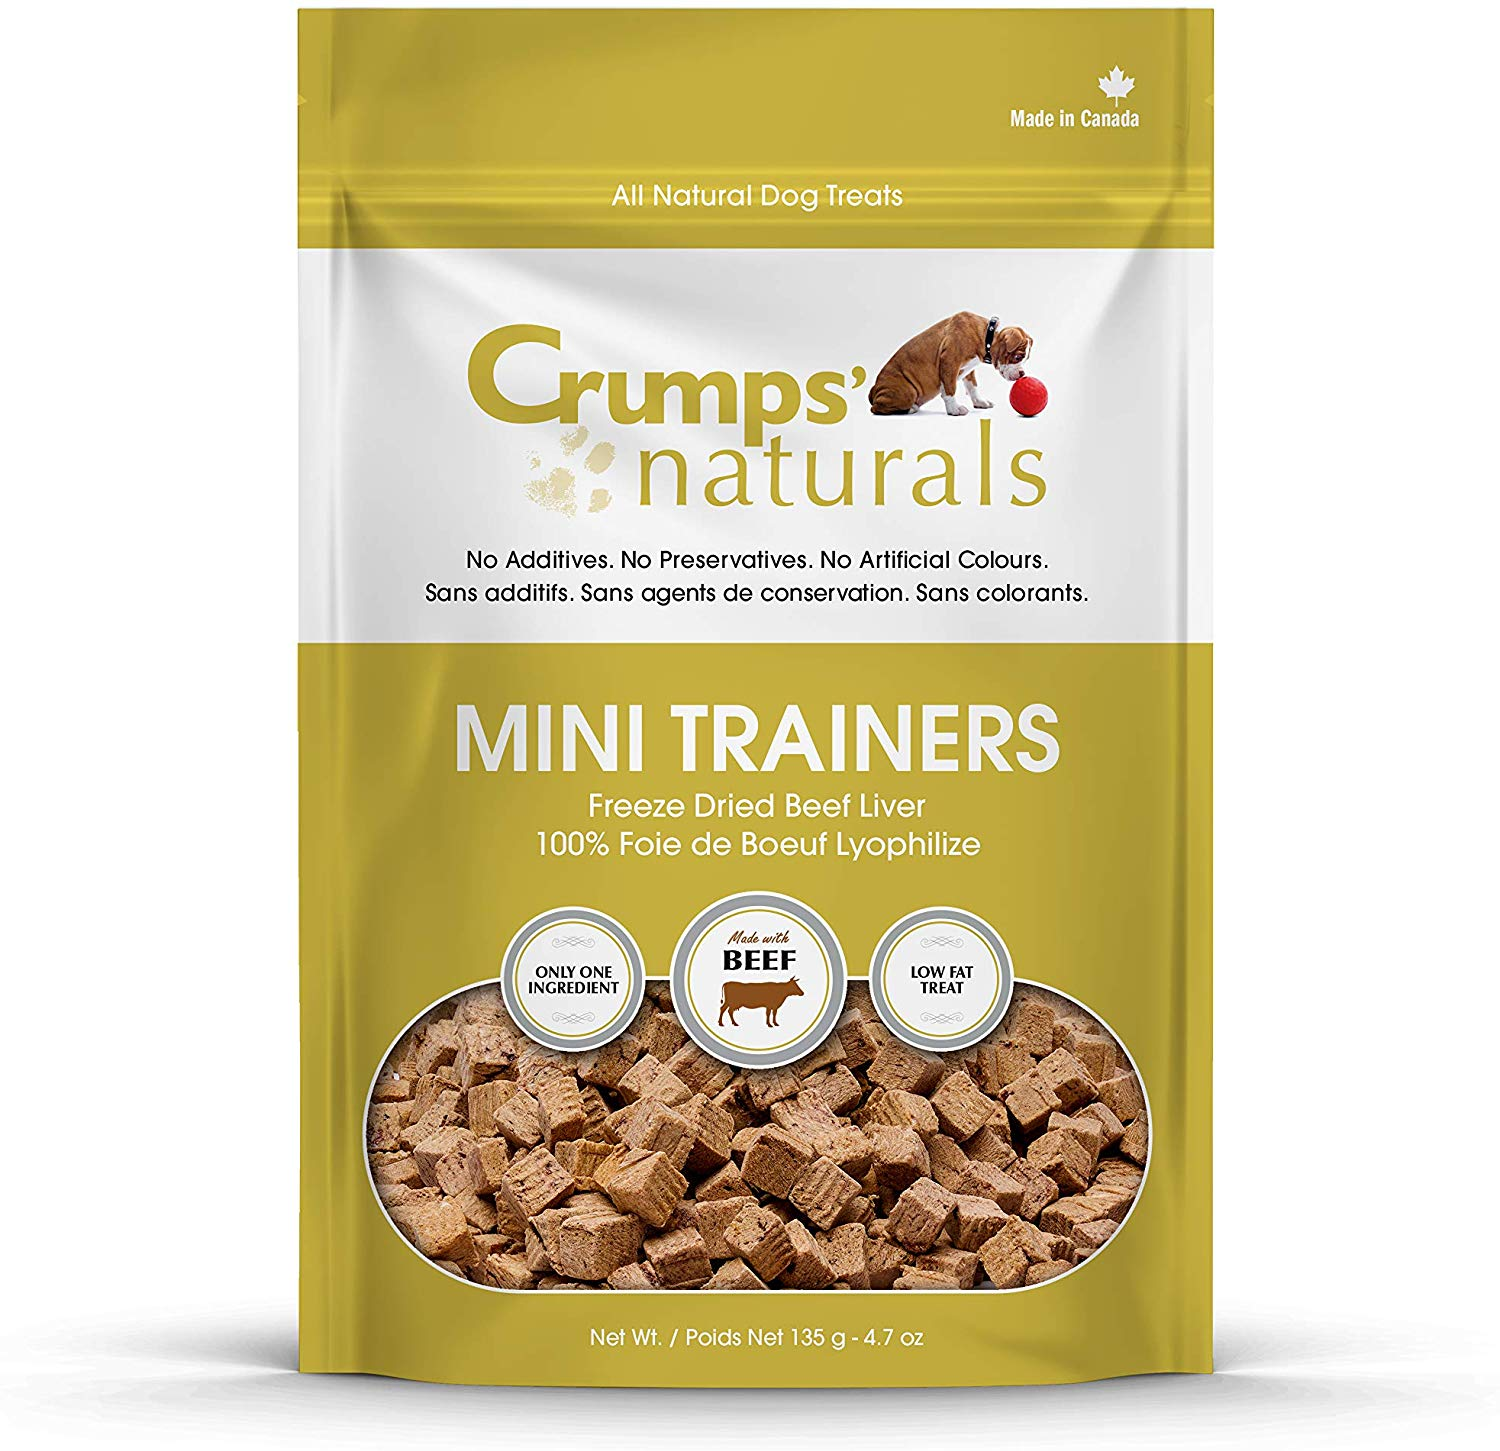 Crumps' Naturals Beef Liver Freeze-Dried Dog Treats, 3.7-oz